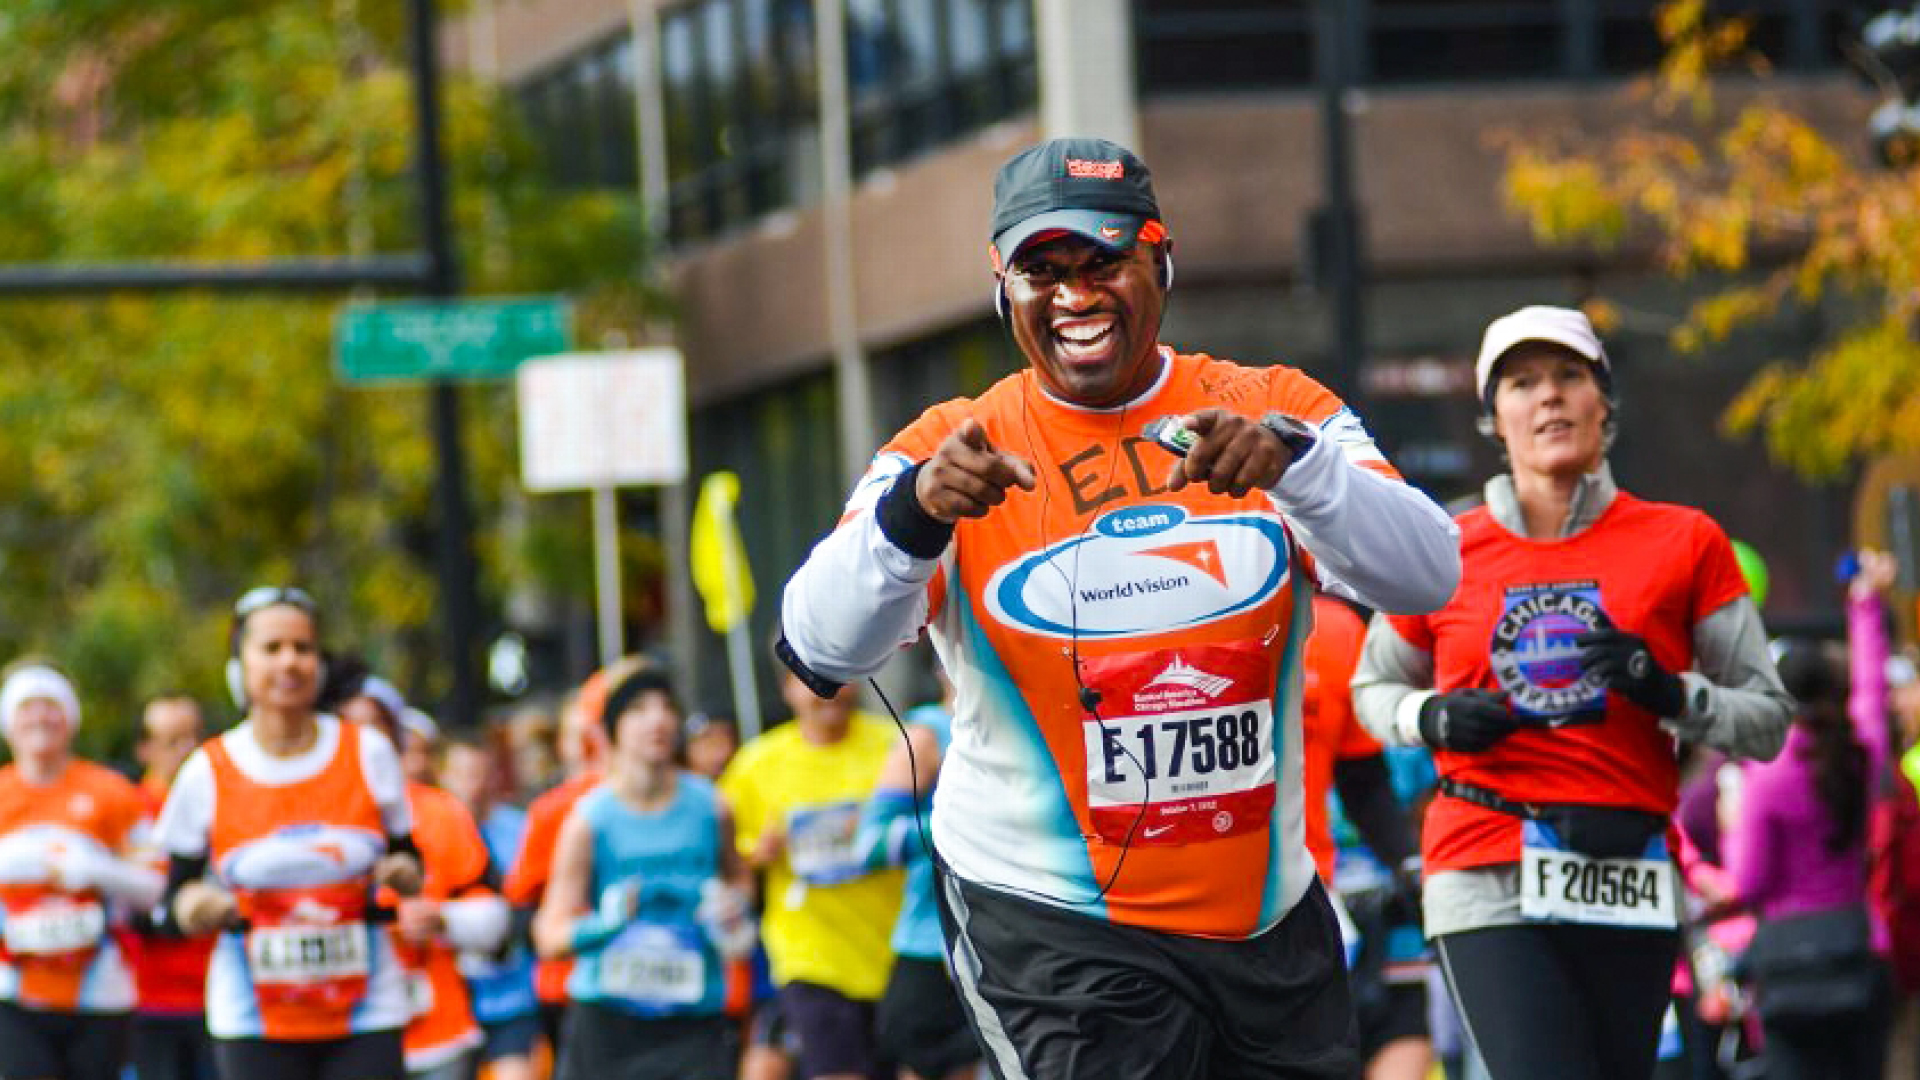 Run for Clean Water with Team World Vision